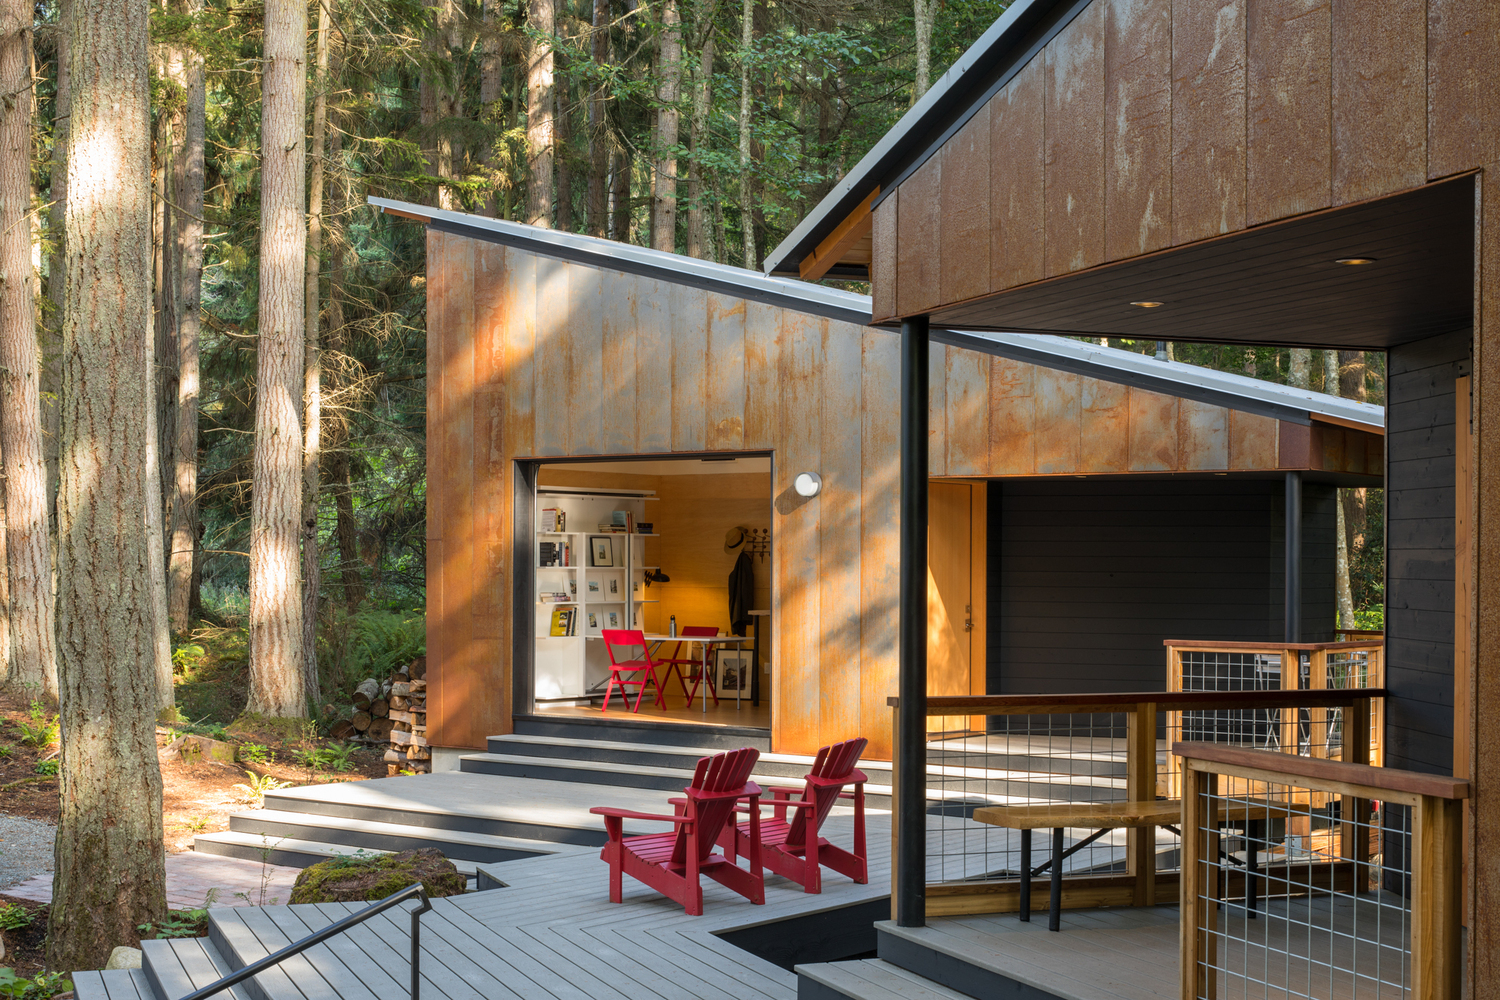 Whidbey Island Residence, DVG Architect